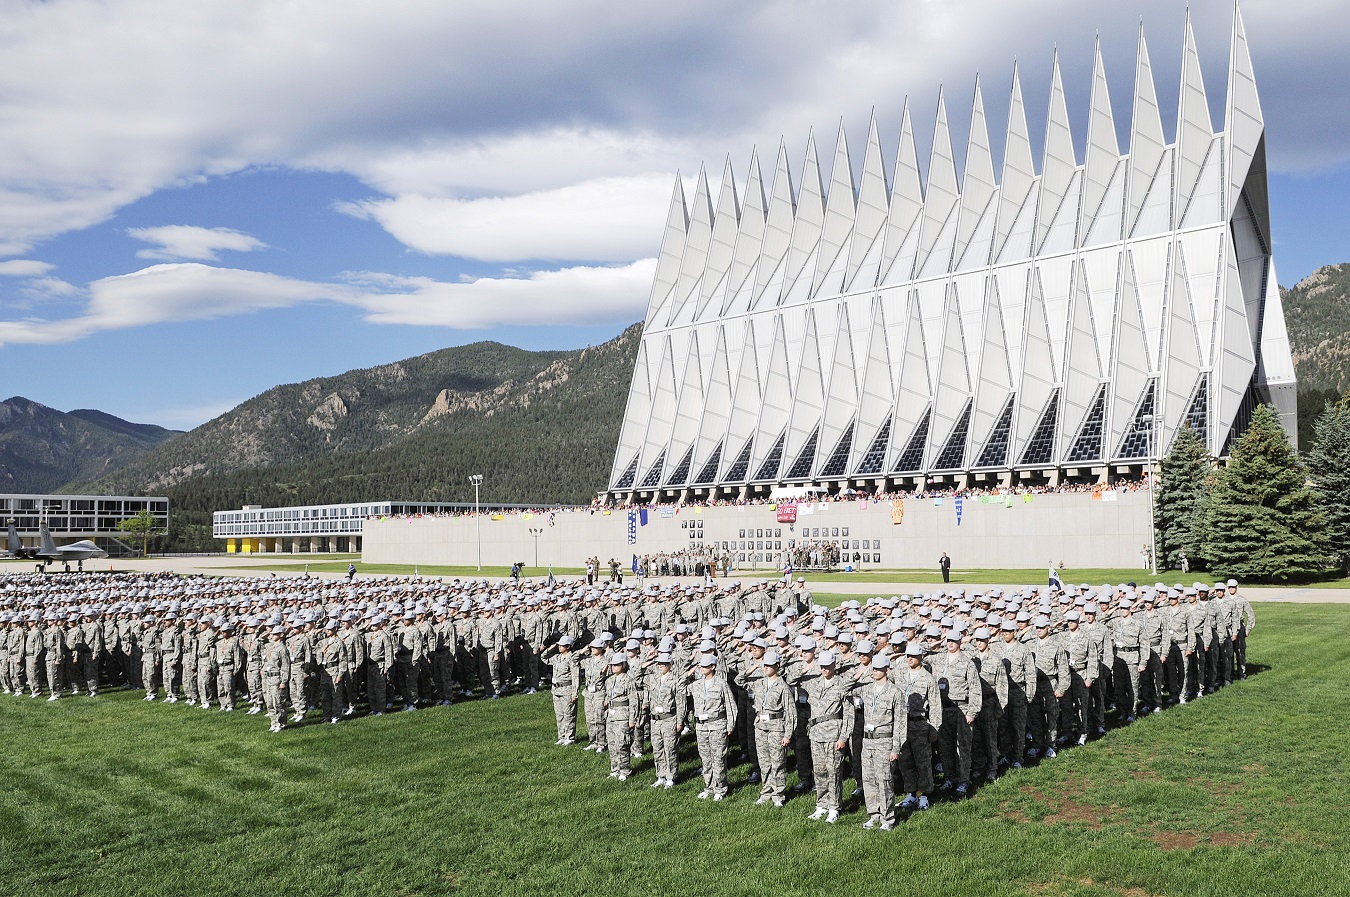 Racial slurs written on dorm room boards of black Air Force Academy cadet candidates